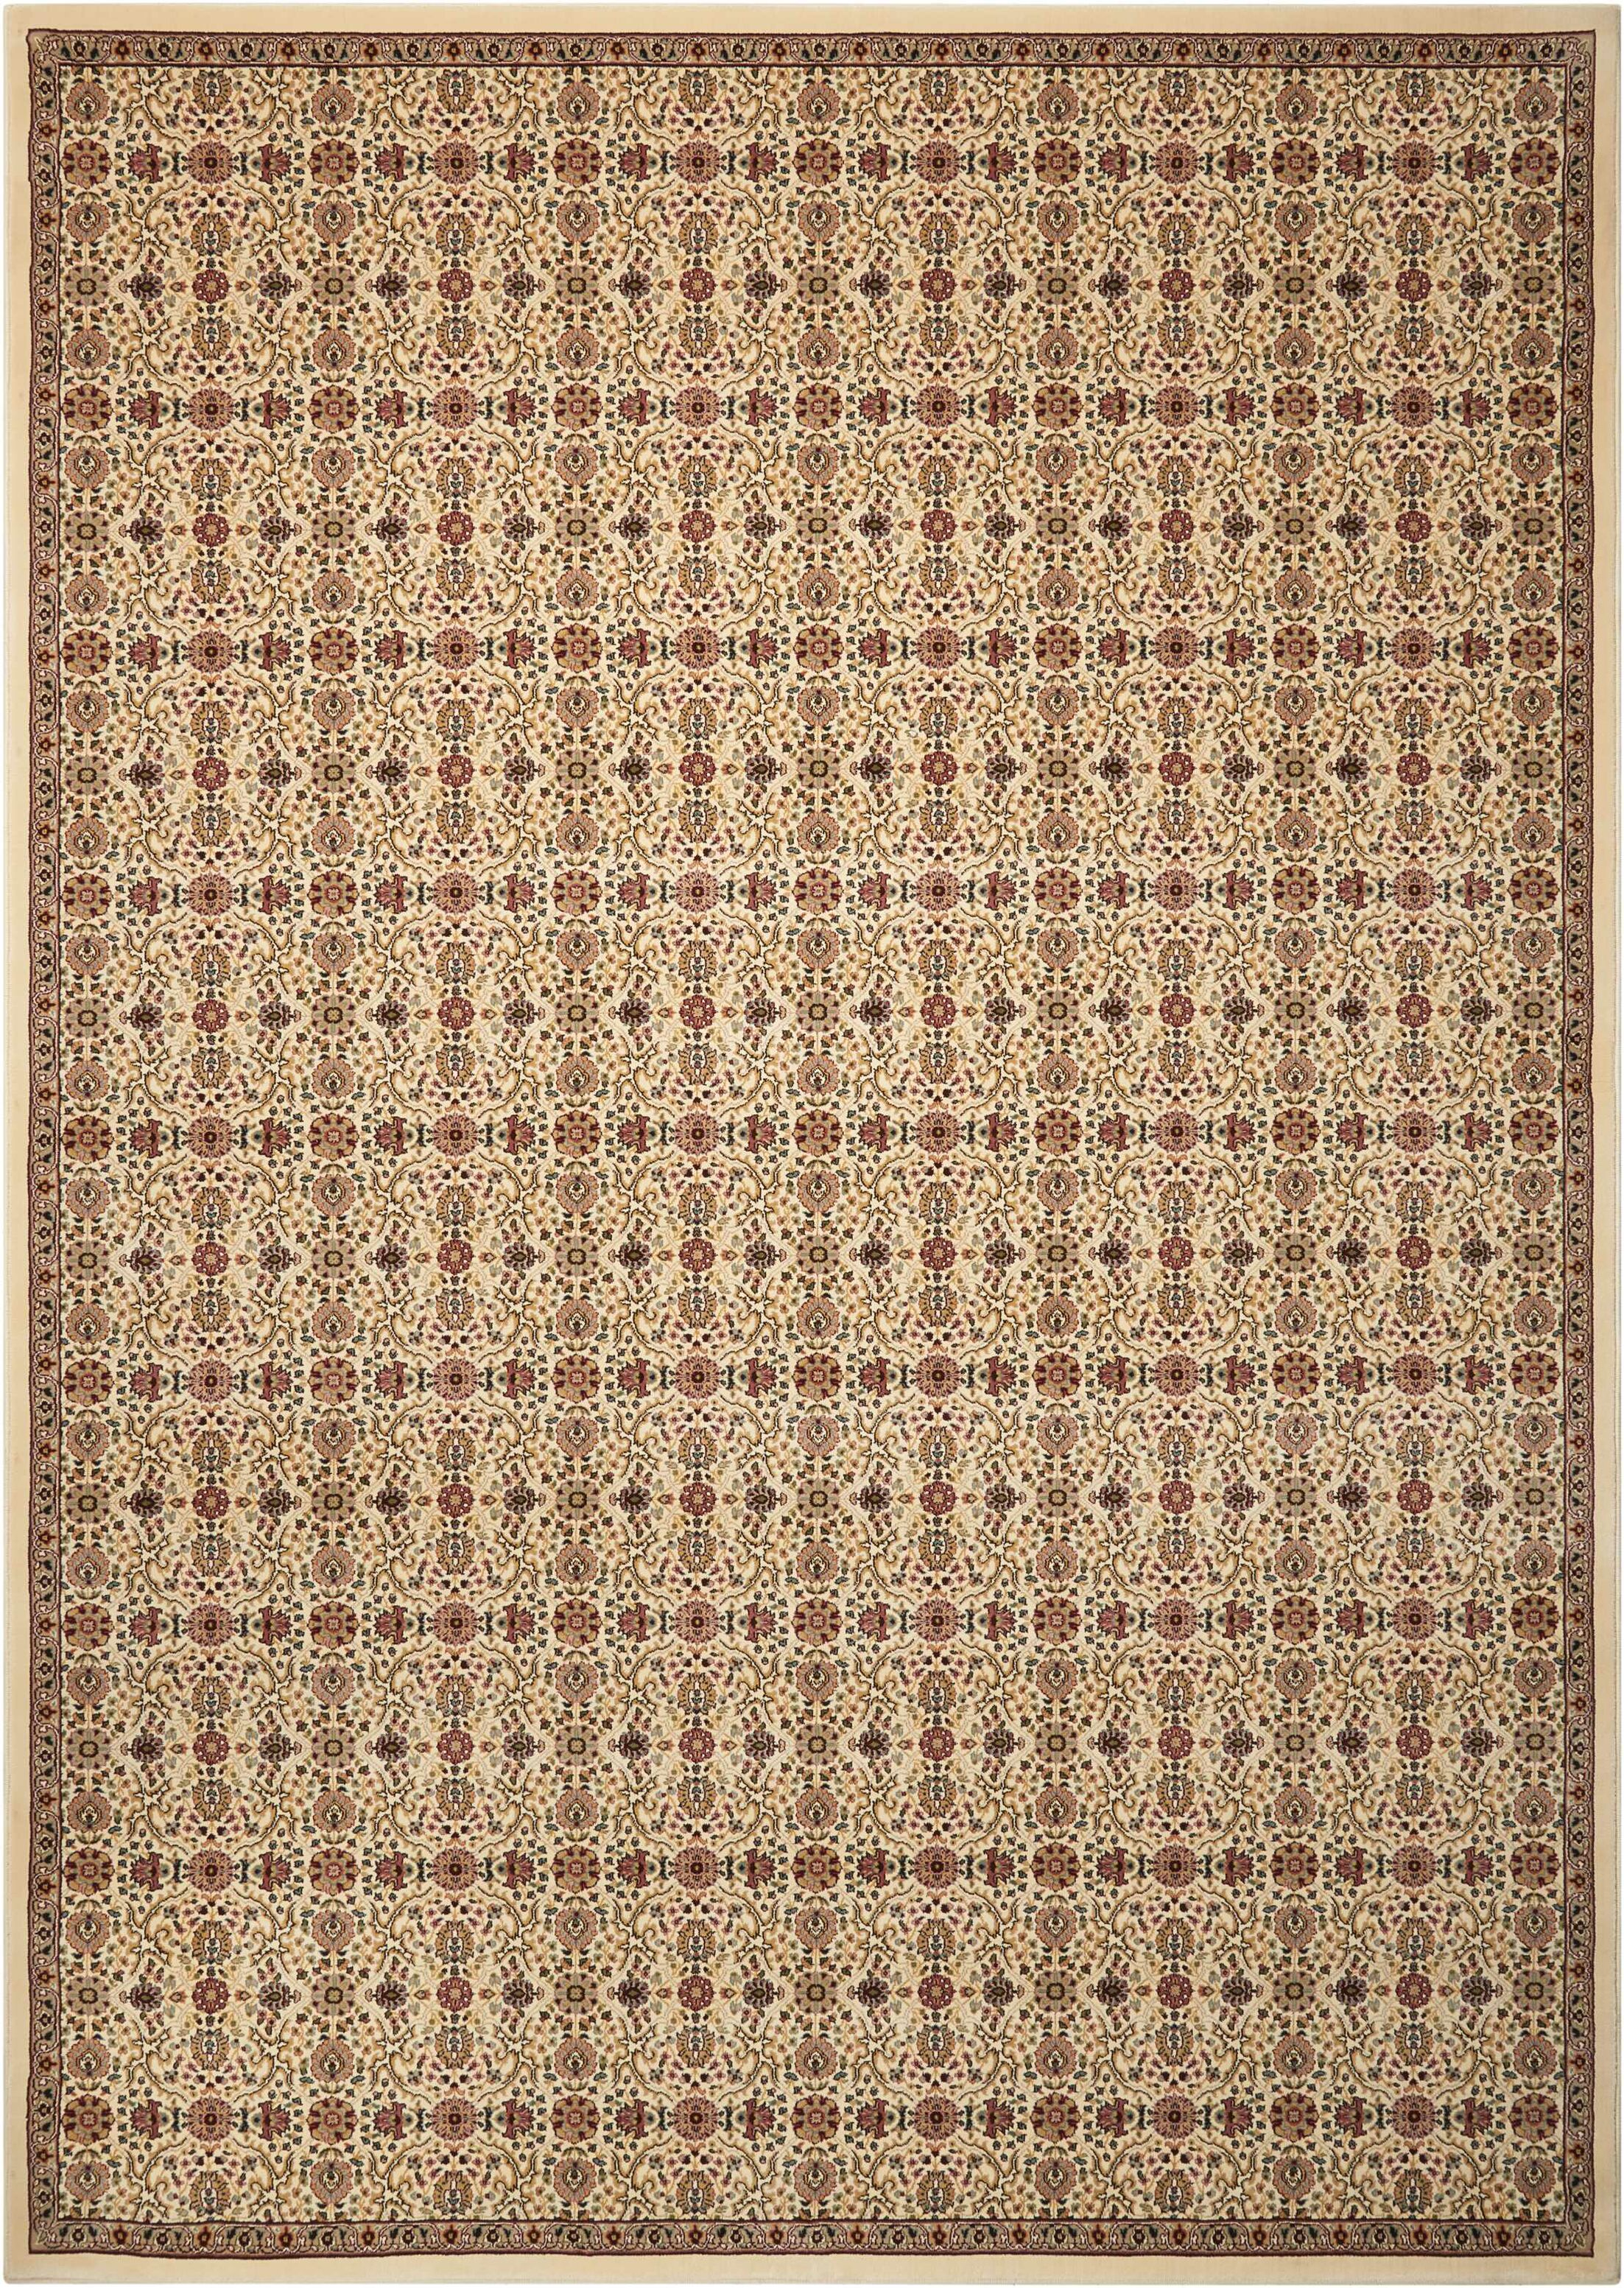 Antiquities Brown Area Rug Rug Size: Rectangle 9'10